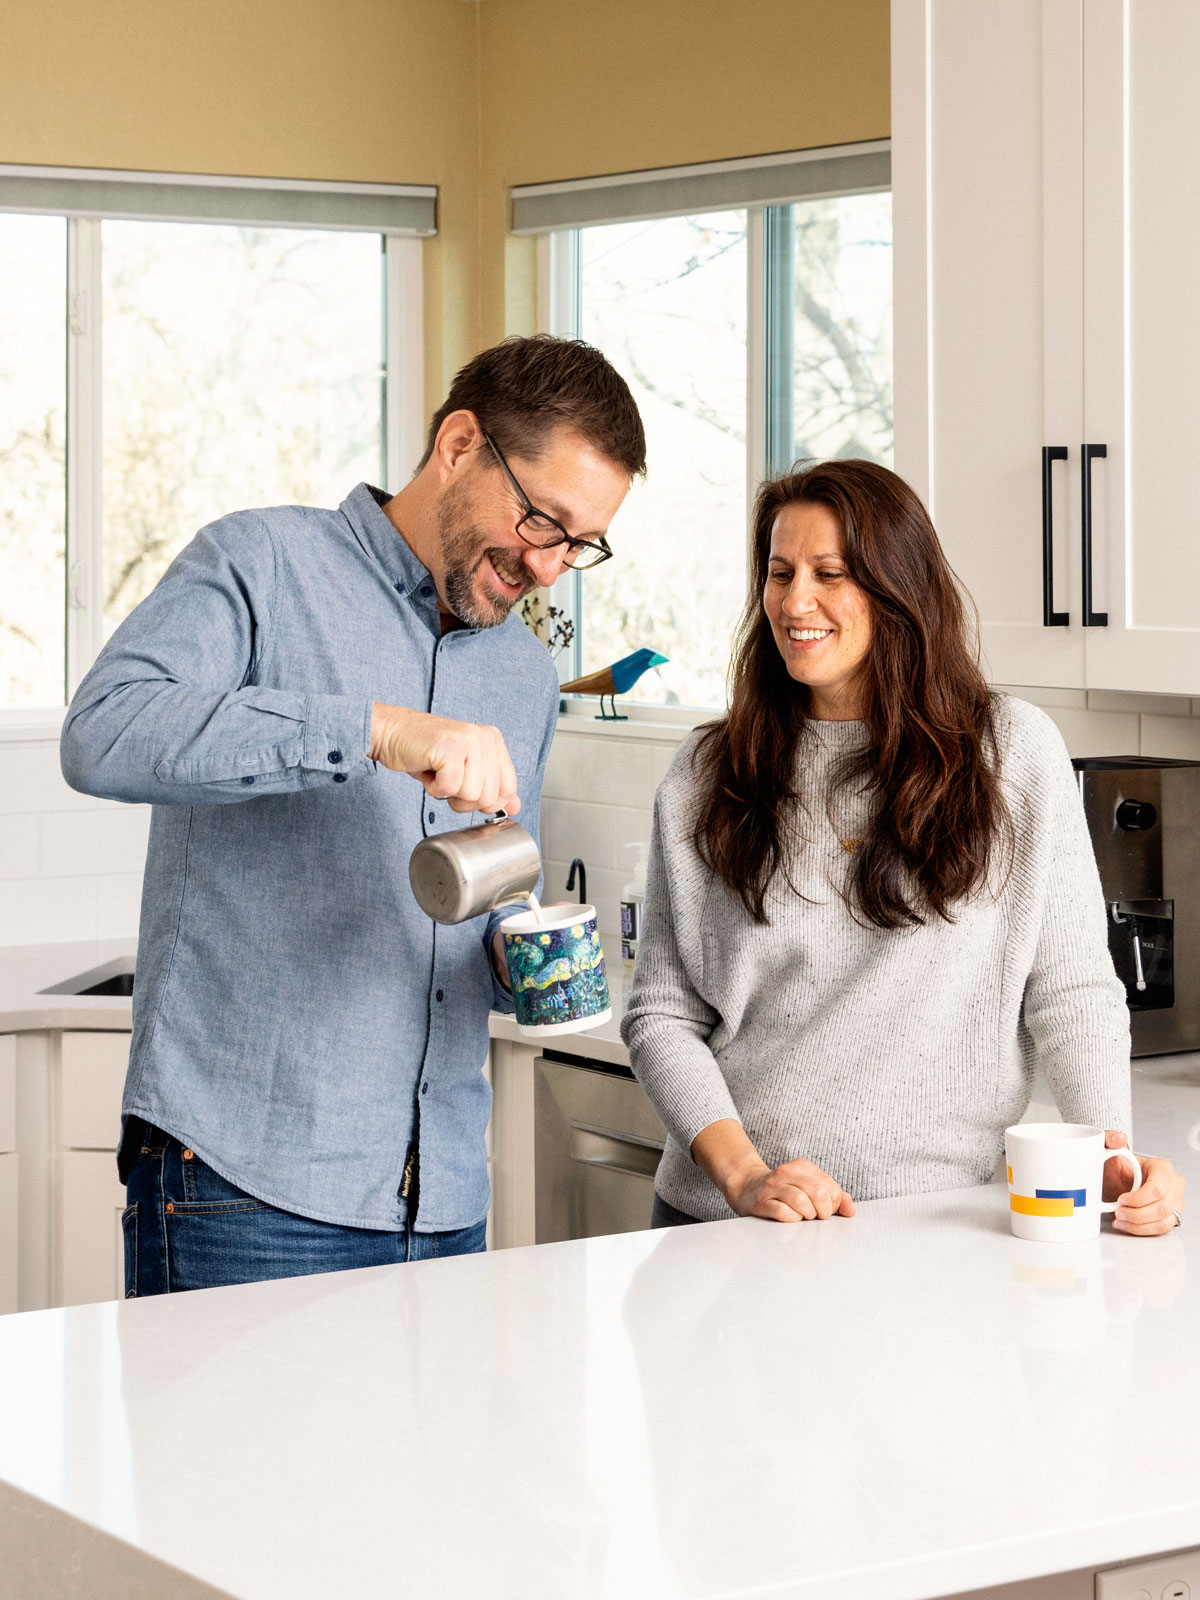 Vertical image of Man and woman making coffee in a renovated kitchen